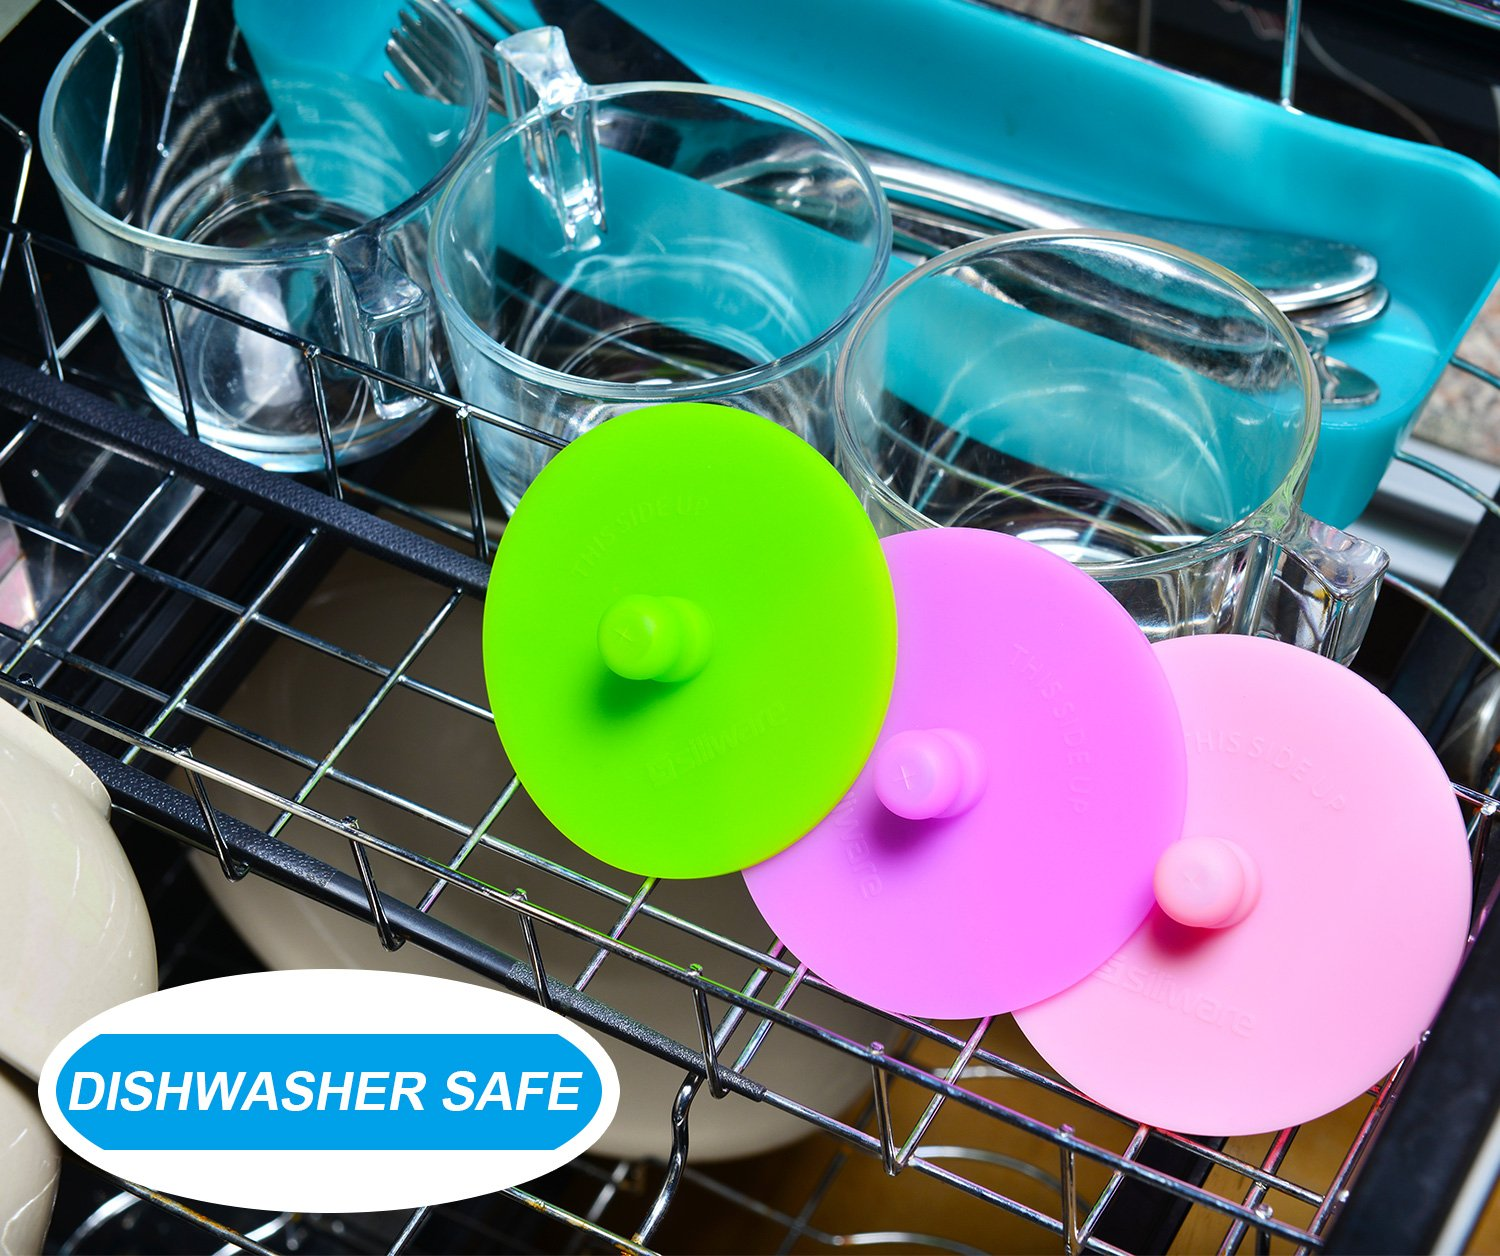 6-Pack Waterless Airlock Fermentation Lids for Wide Mouth Mason Jars, Mold Free, Food-Grade Silicone Easy Fermenting Lids for Sauerkraut, Kimchi, Pickles or Any Fermented Probiotic Food (3 Colors) by Siliware (Image #5)